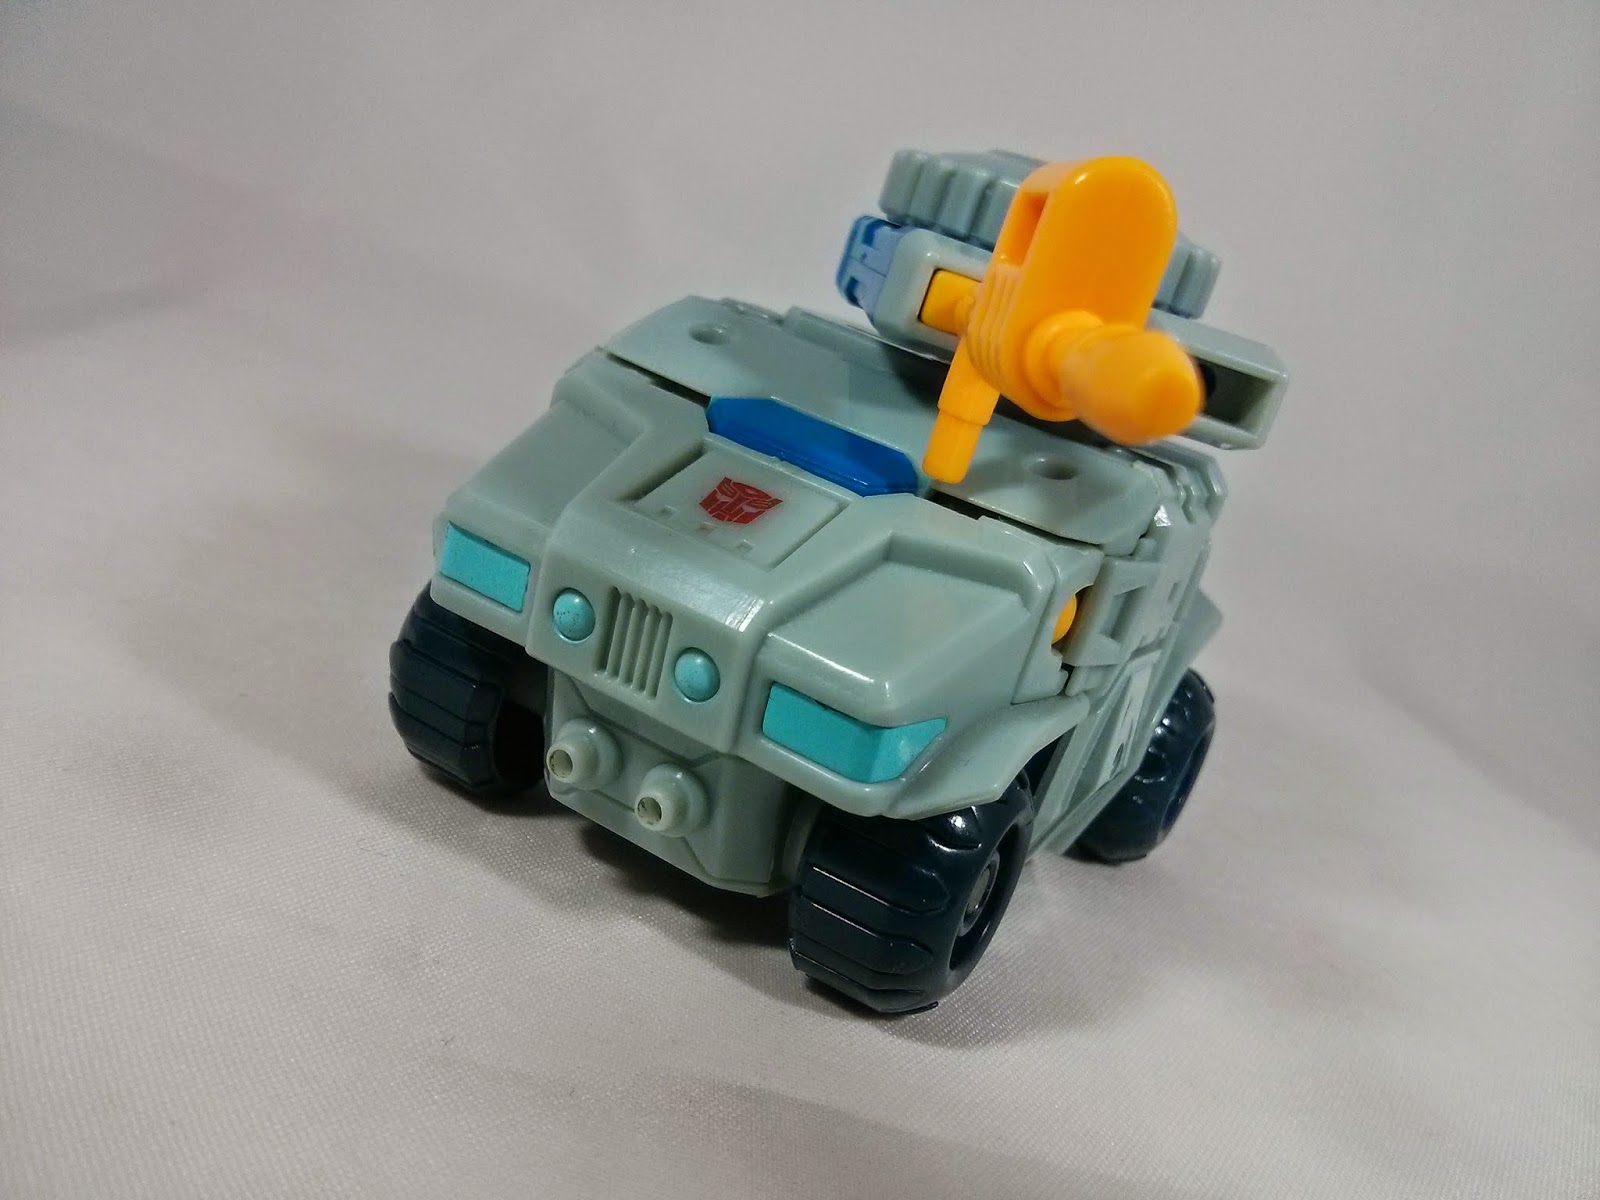 Mech Ideas Gauntlet car mode